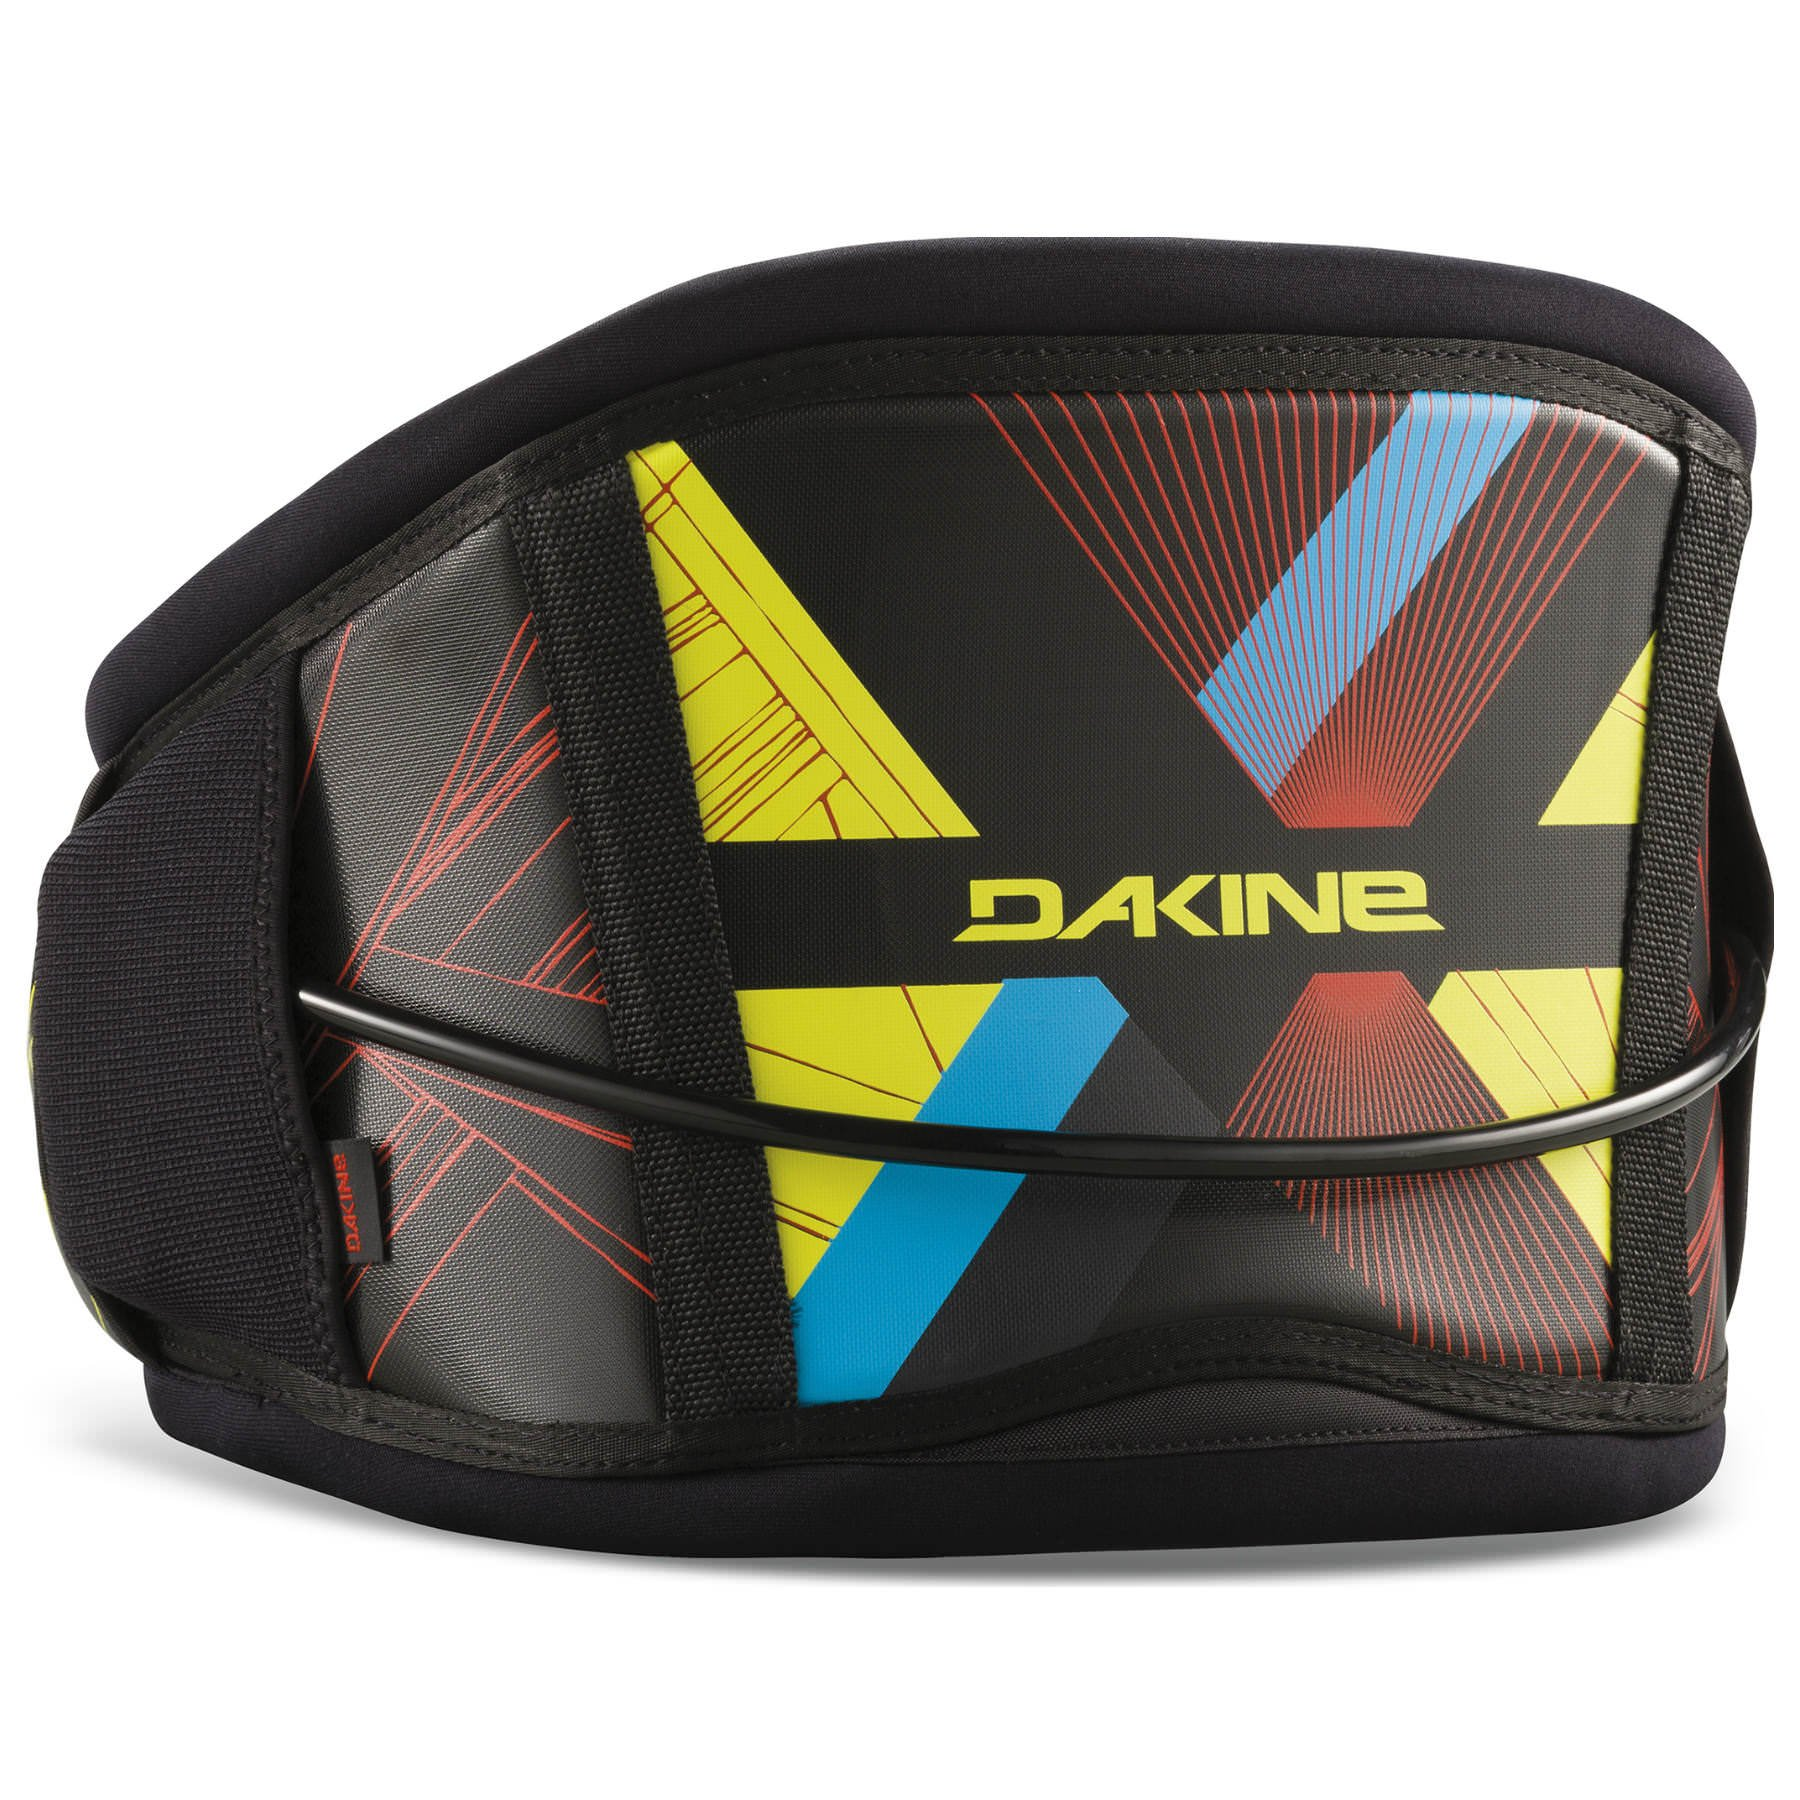 Dakine Men's C-1 Hammerhead Kite Harness, Black, L